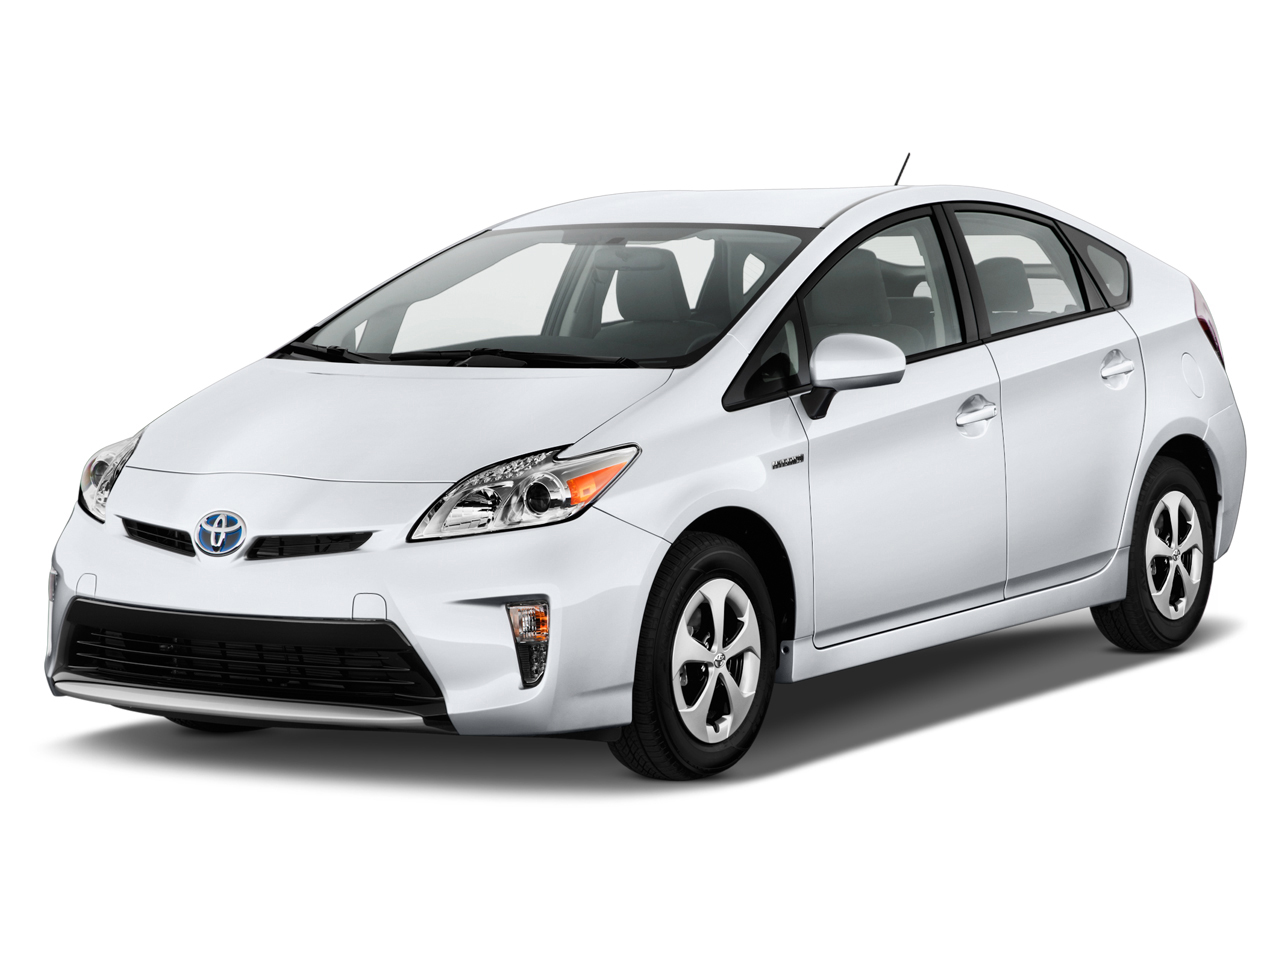 toyota prius safety review and crash test ratings   the car connection